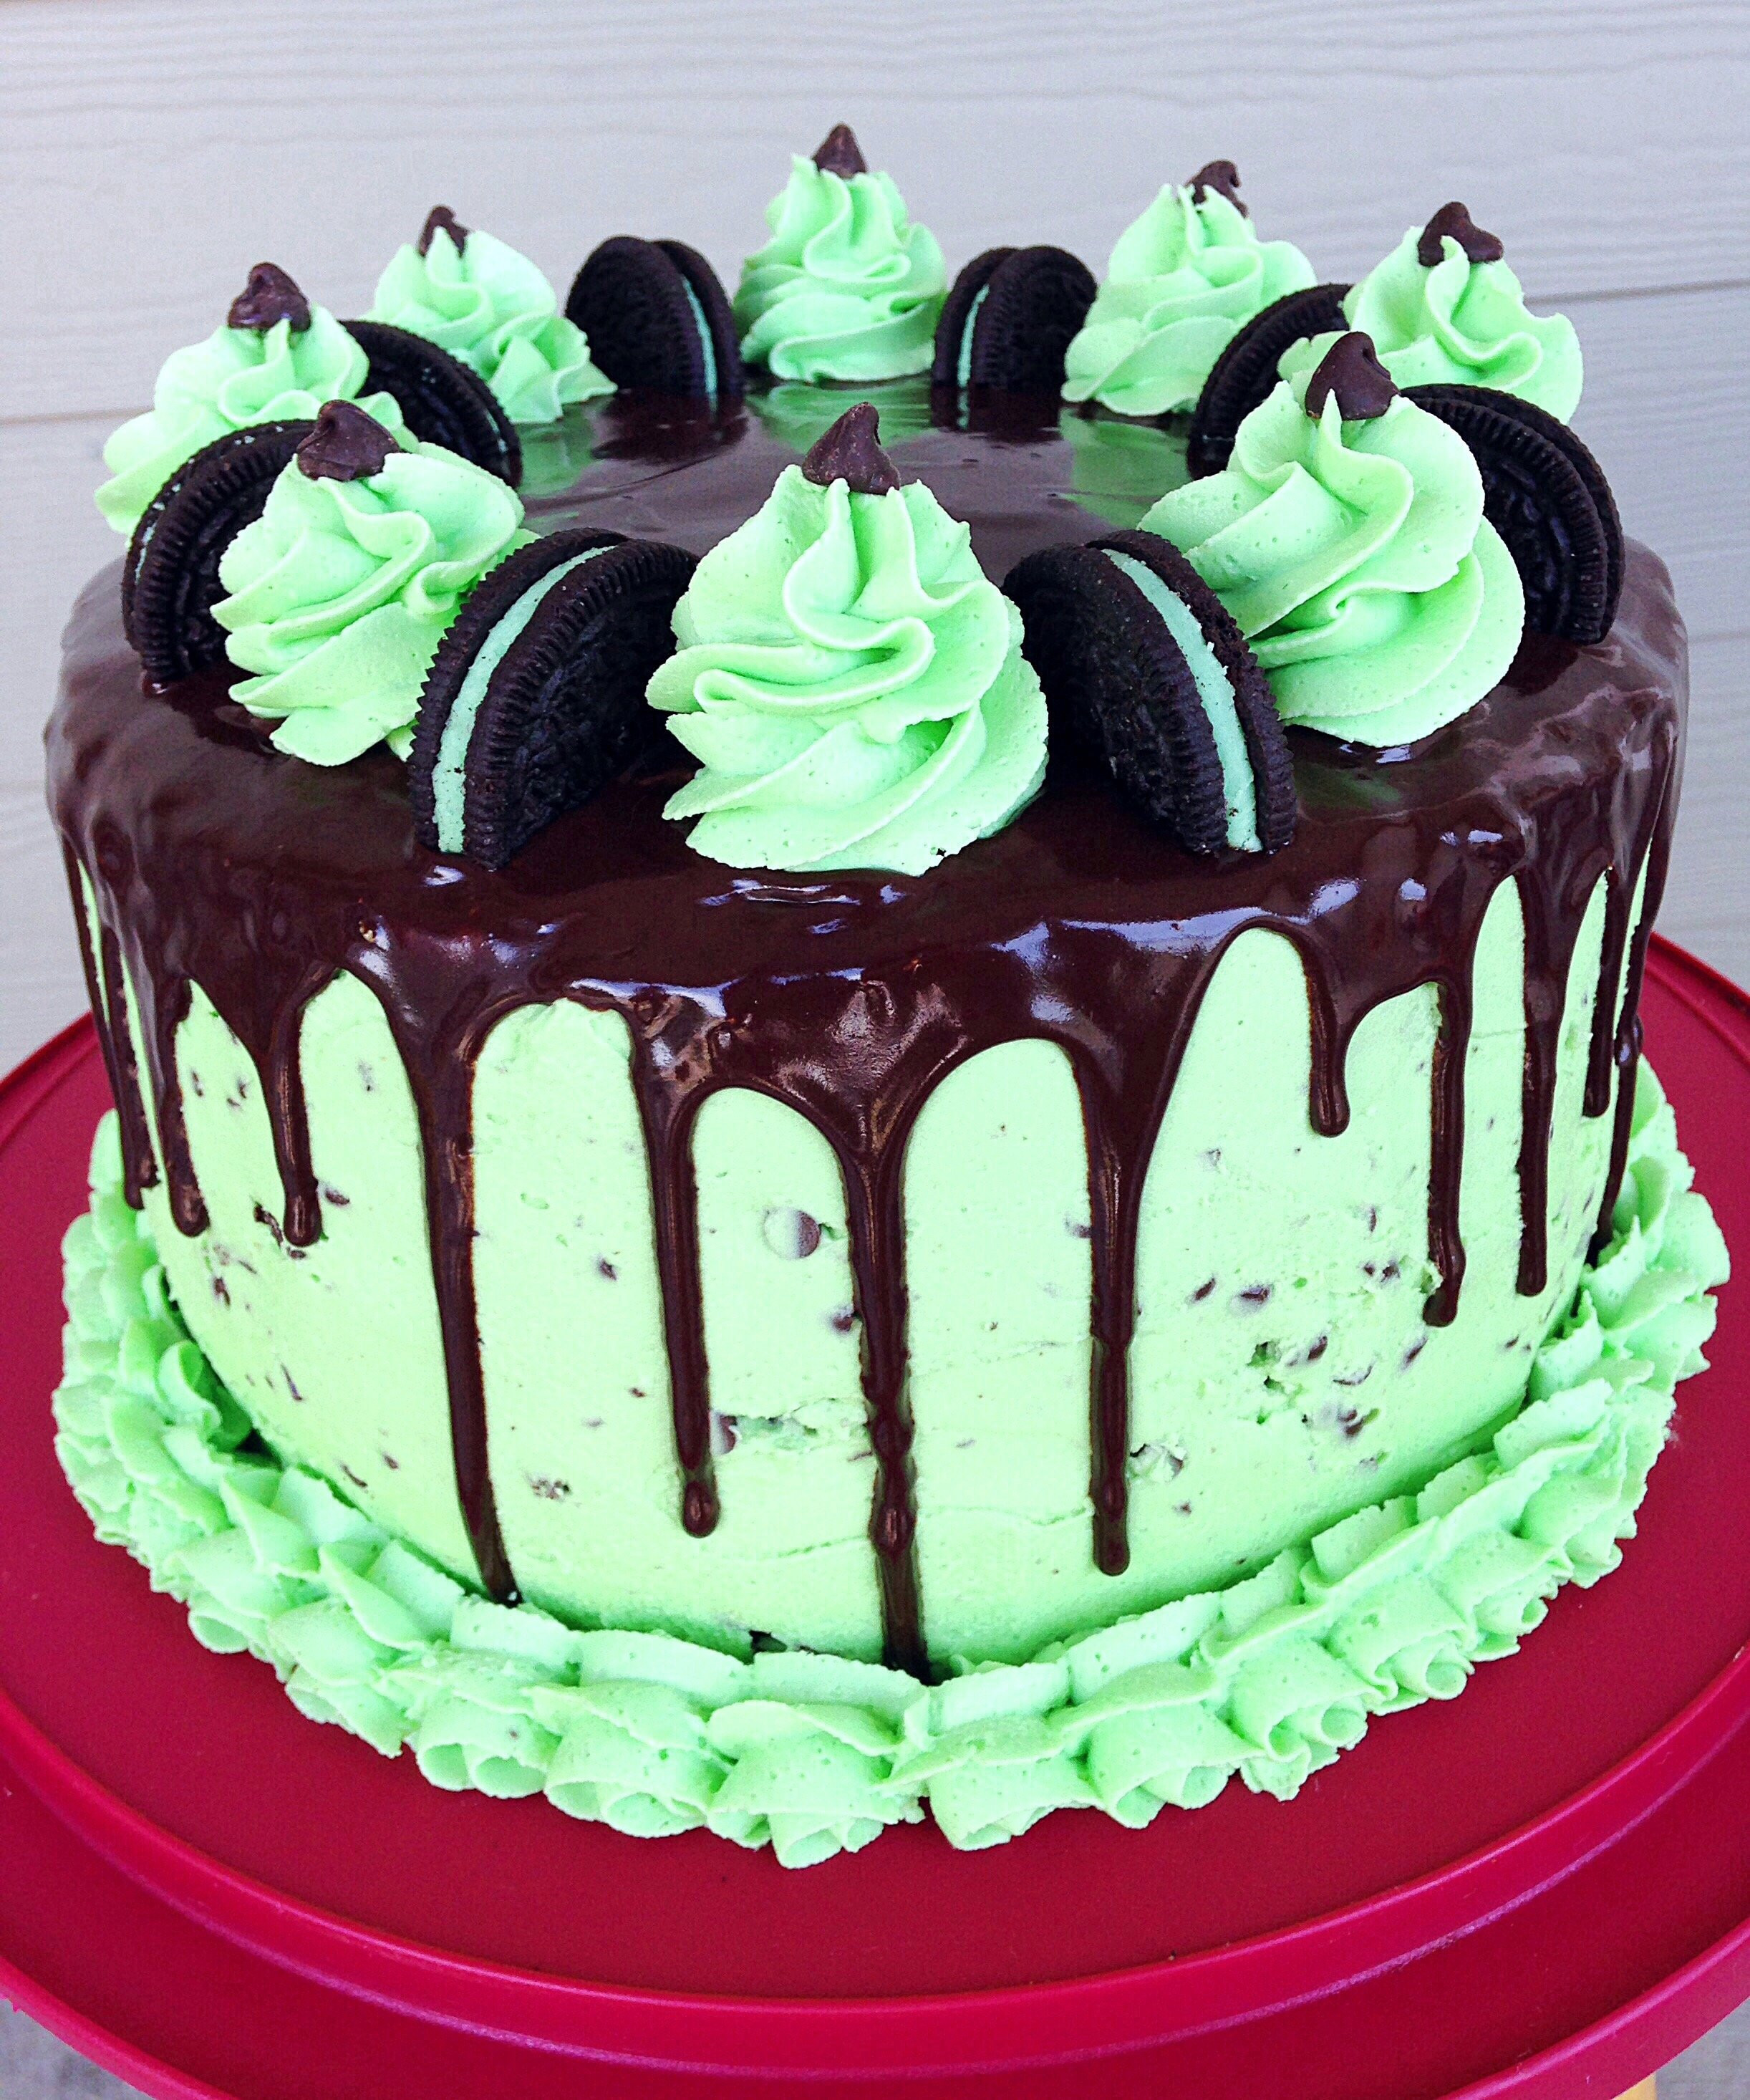 Mint Chocolate Chip Cake  Today I made my cousin a mint chocolate chip birthday cake